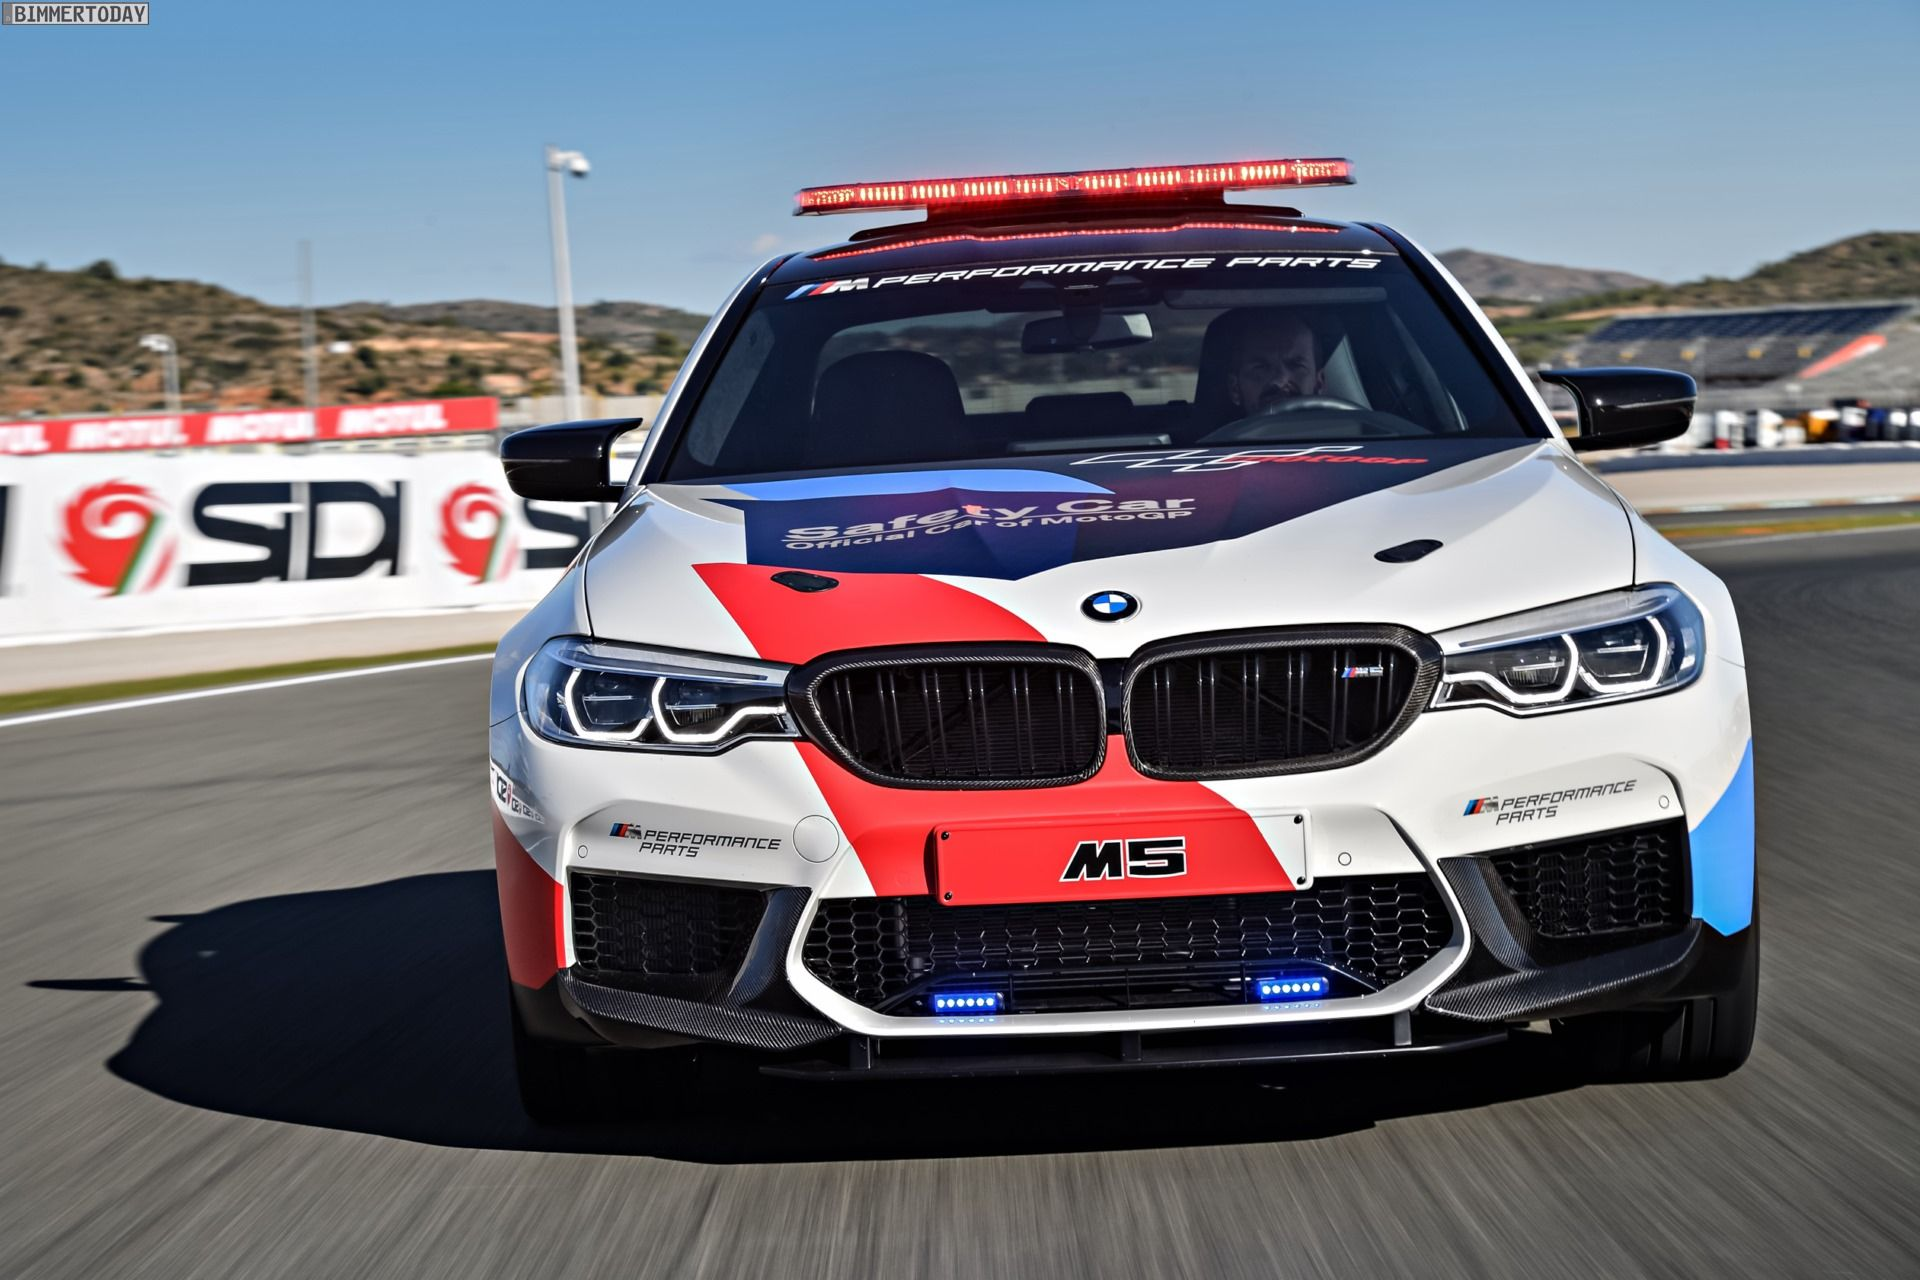 New Photo Gallery Of The Bmw M5 Safety Car Bmw Bmw M5 Car Safety